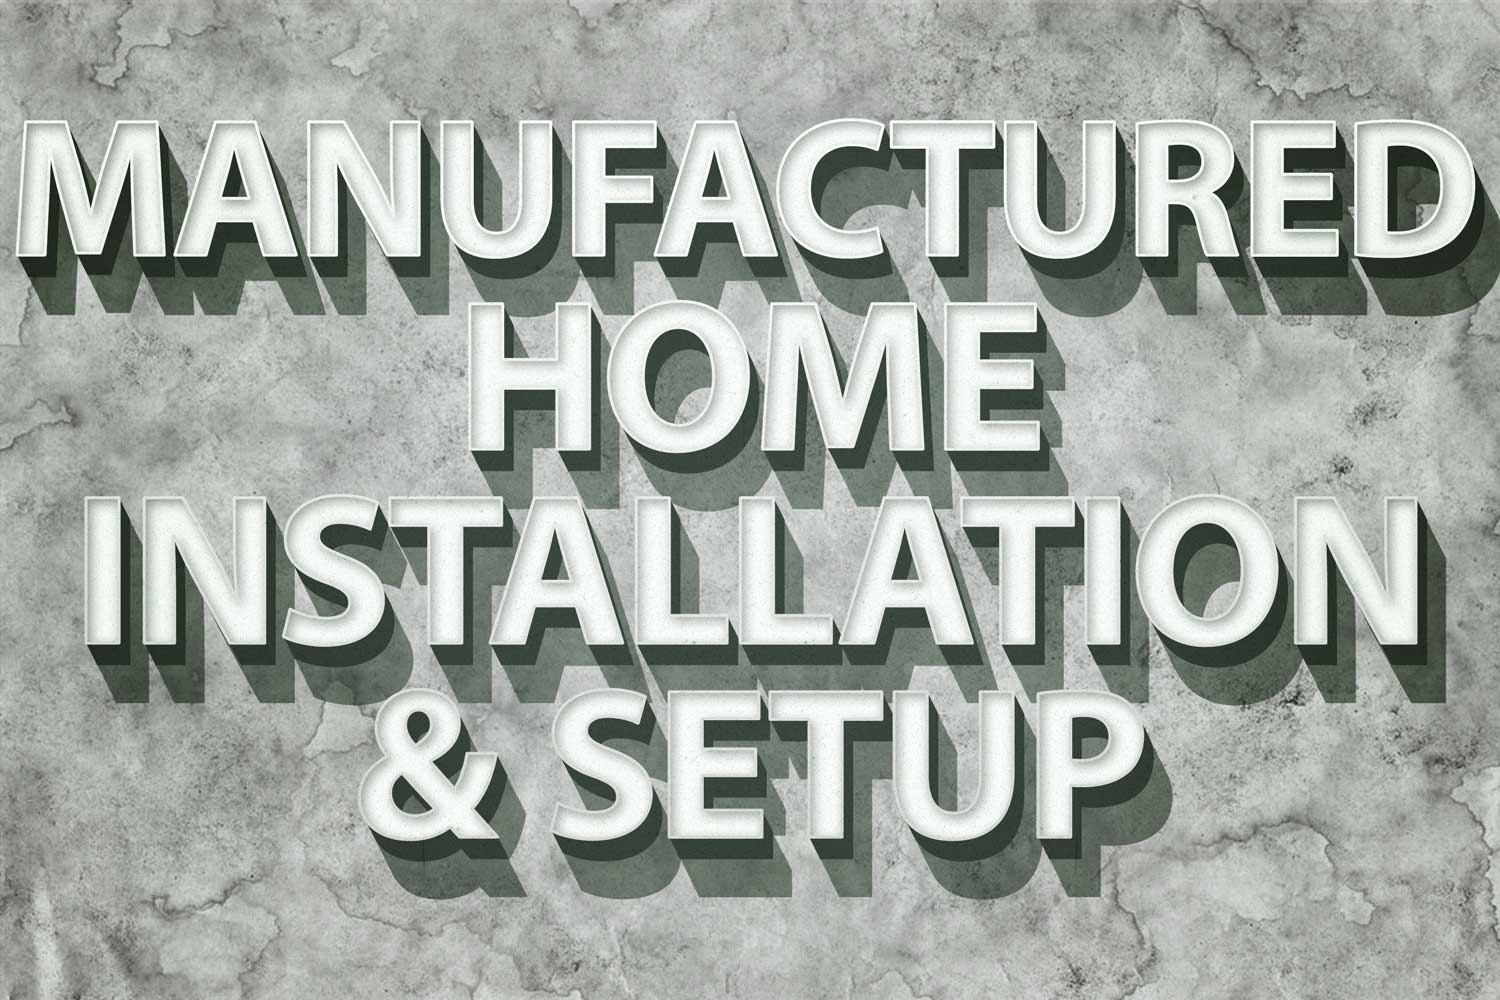 Manufactured-home-installation-and-setup